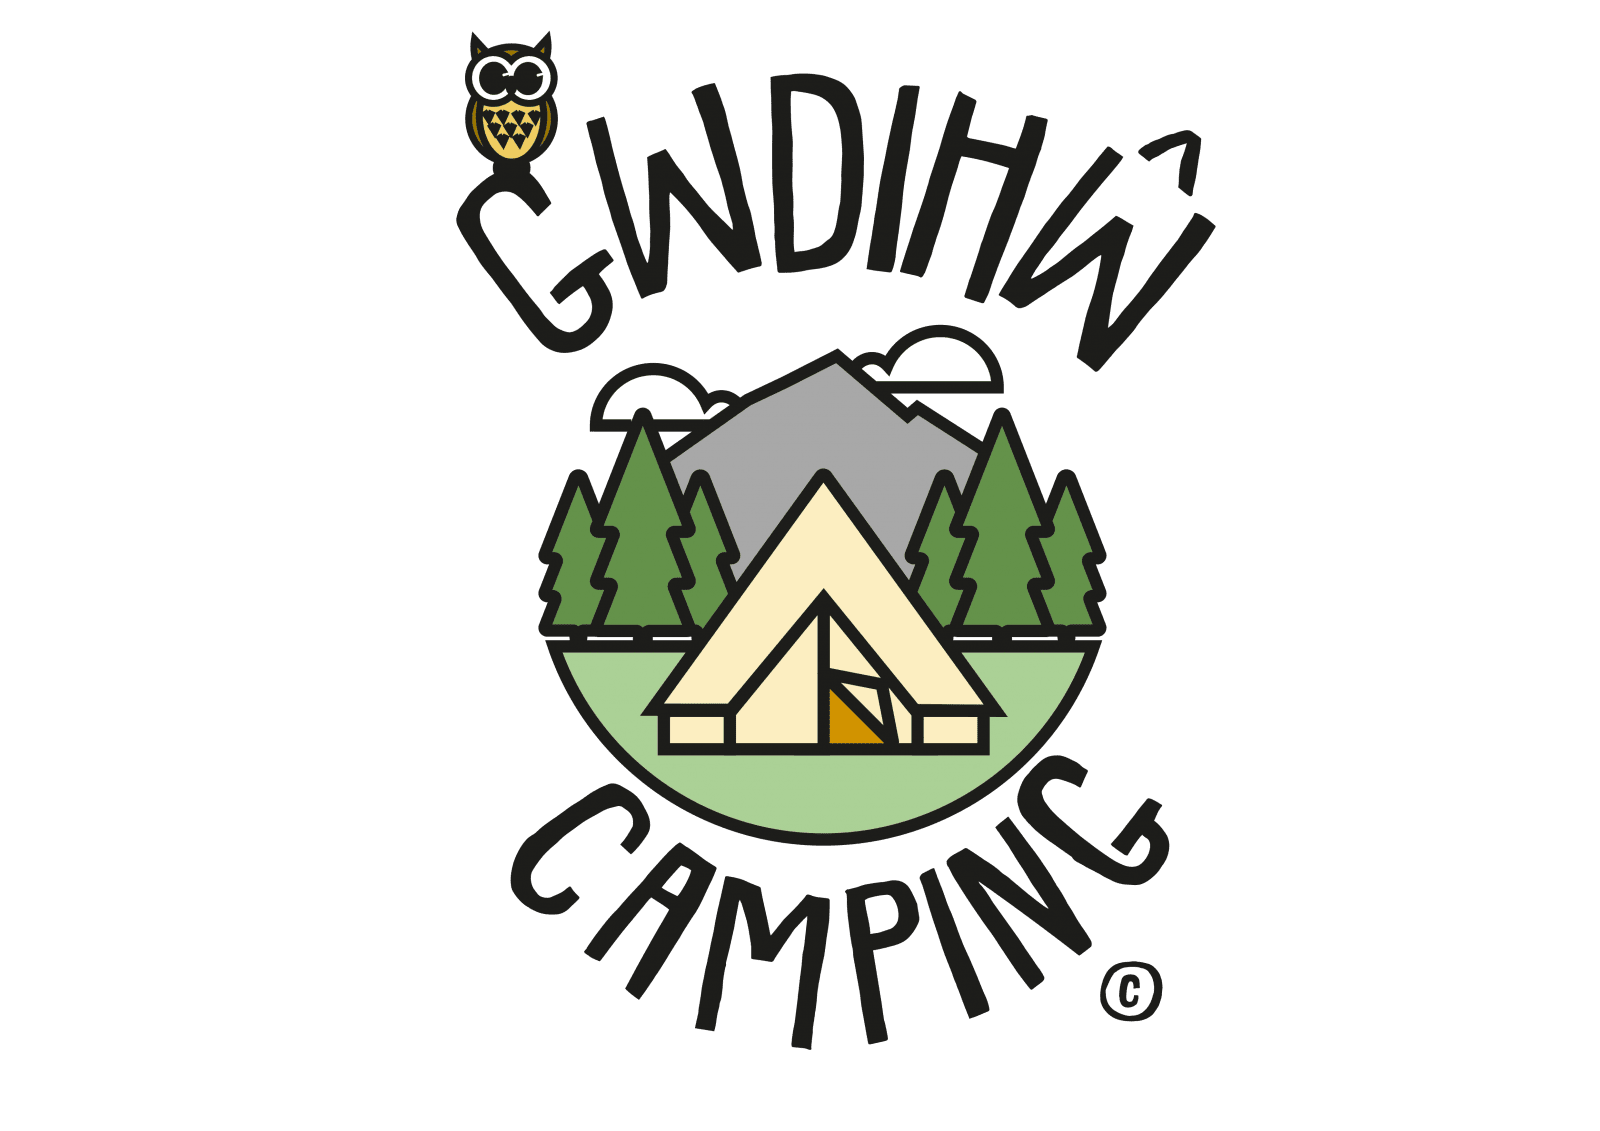 Gwdihw Camping: New Business, New Website